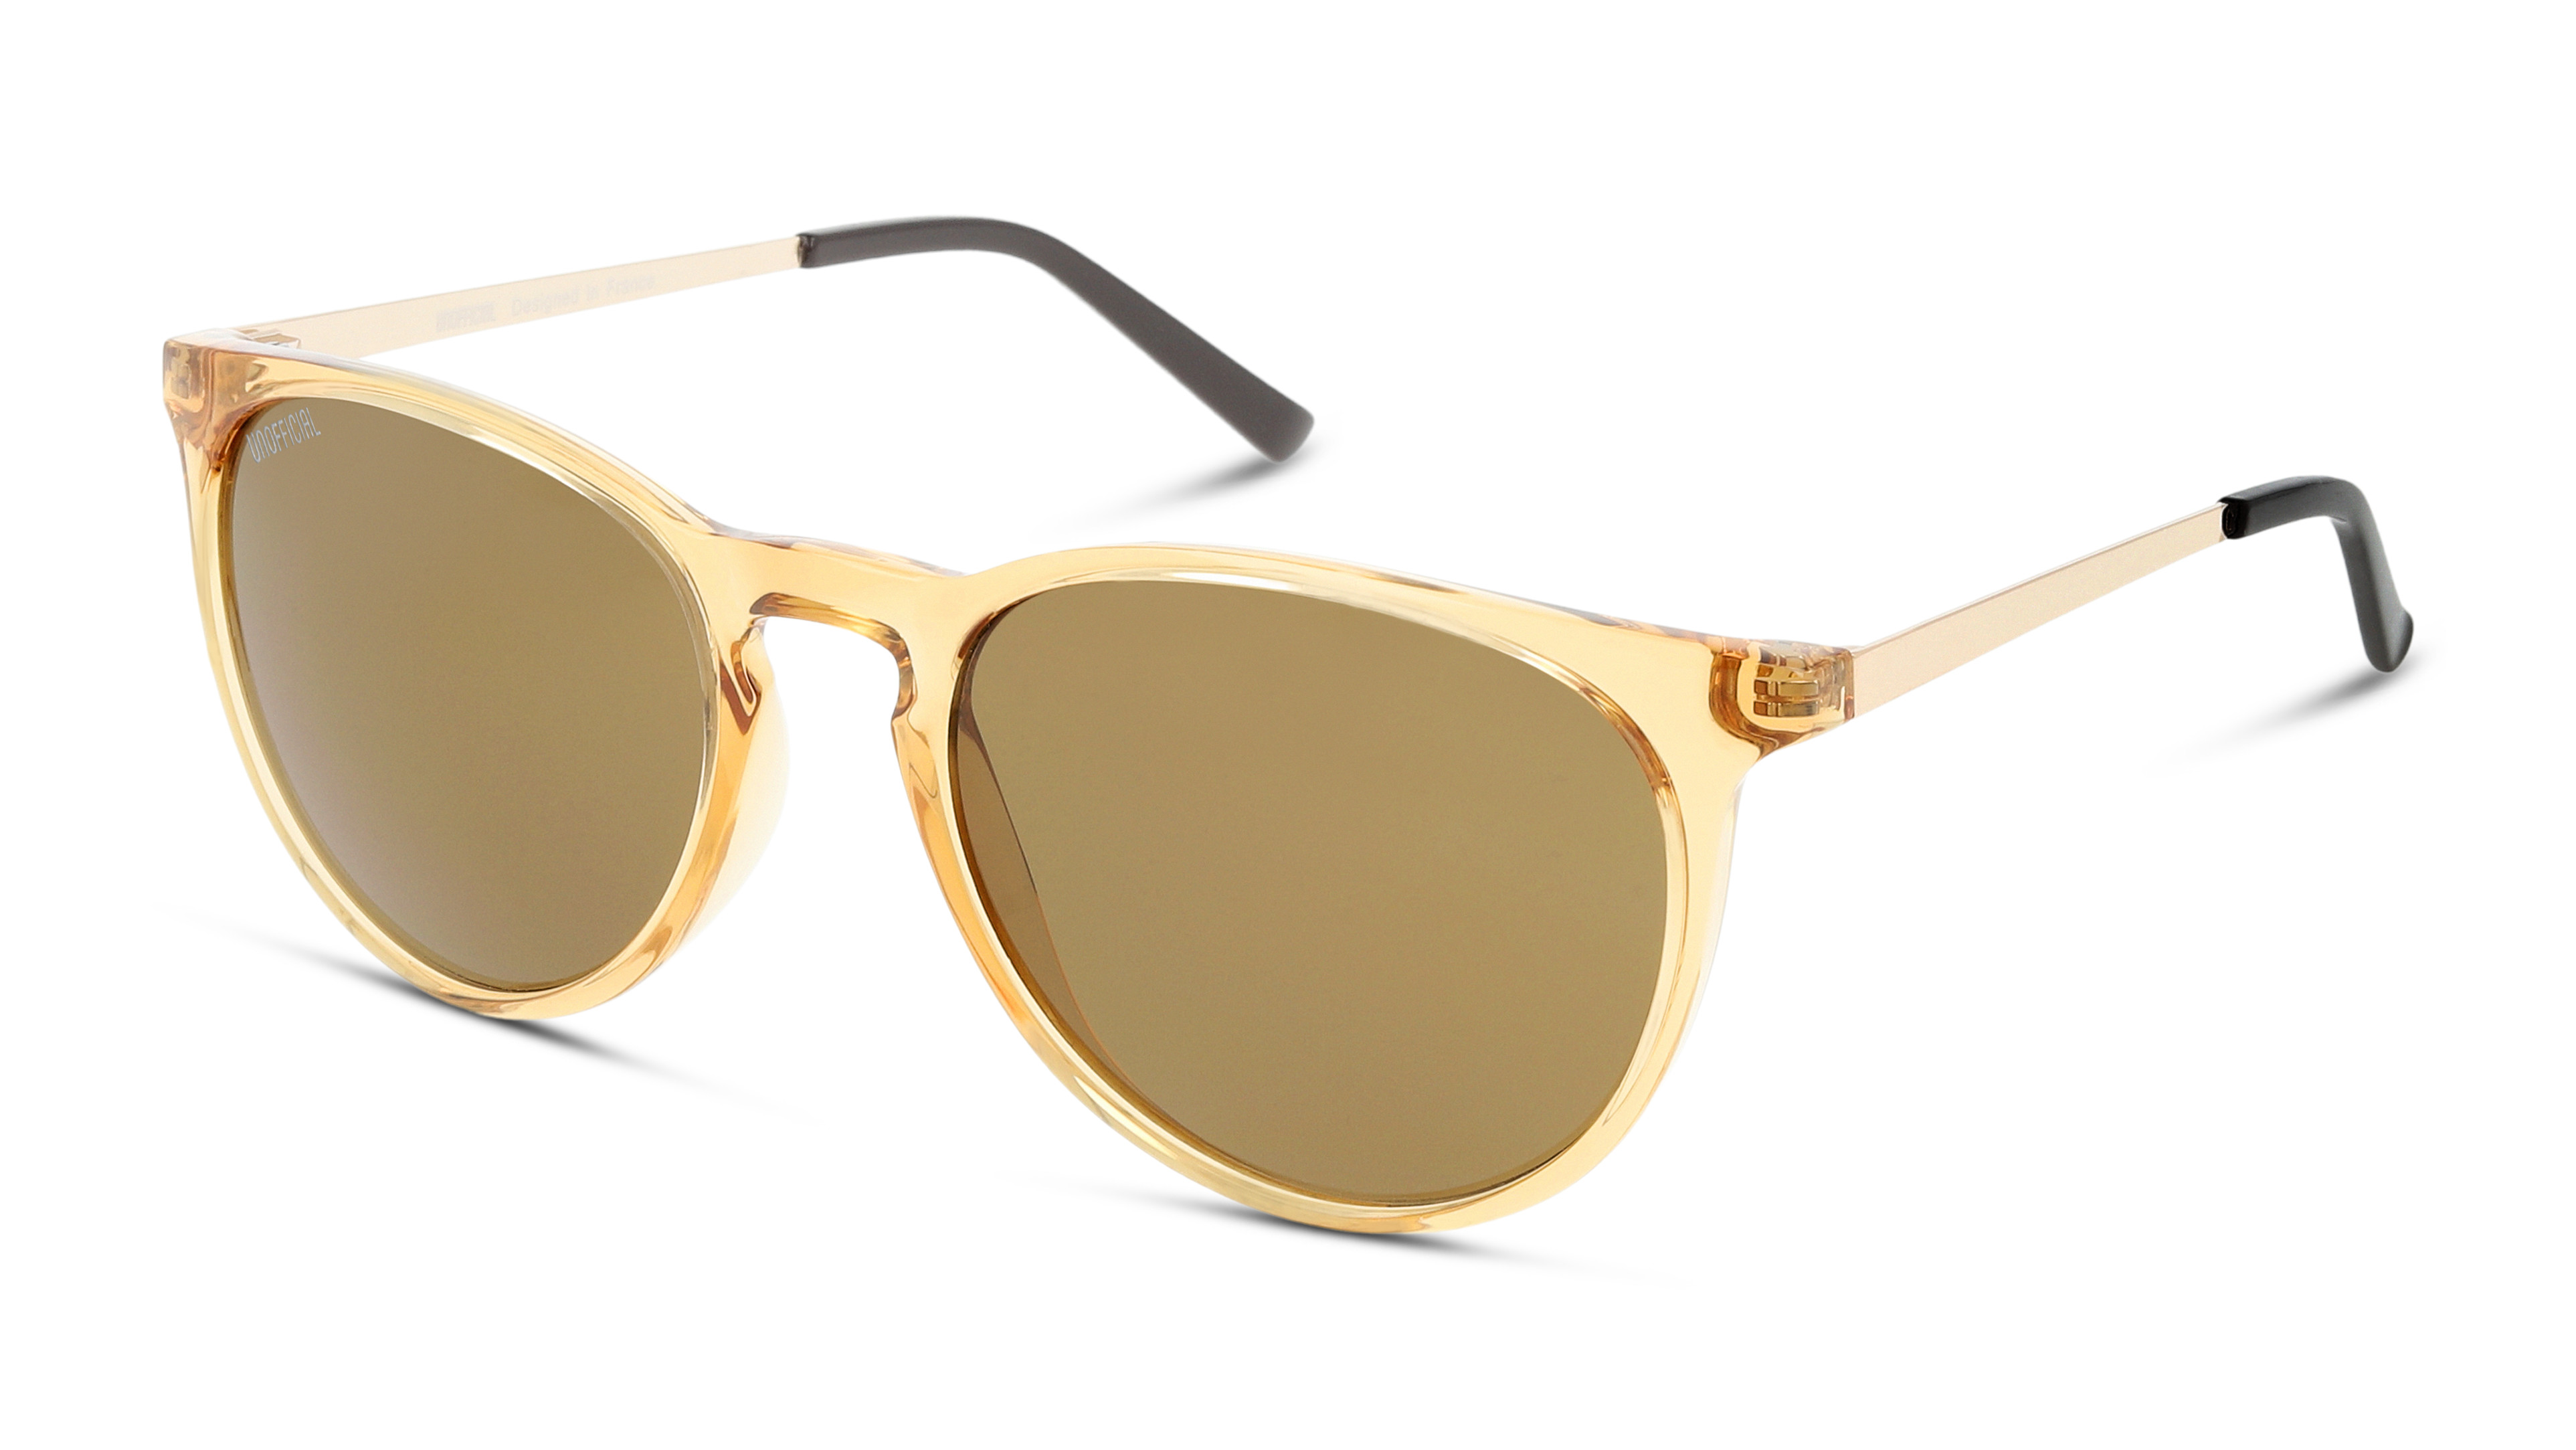 8719154732928-angle-03-unofficial-unsf0089-eyewear-white-gold